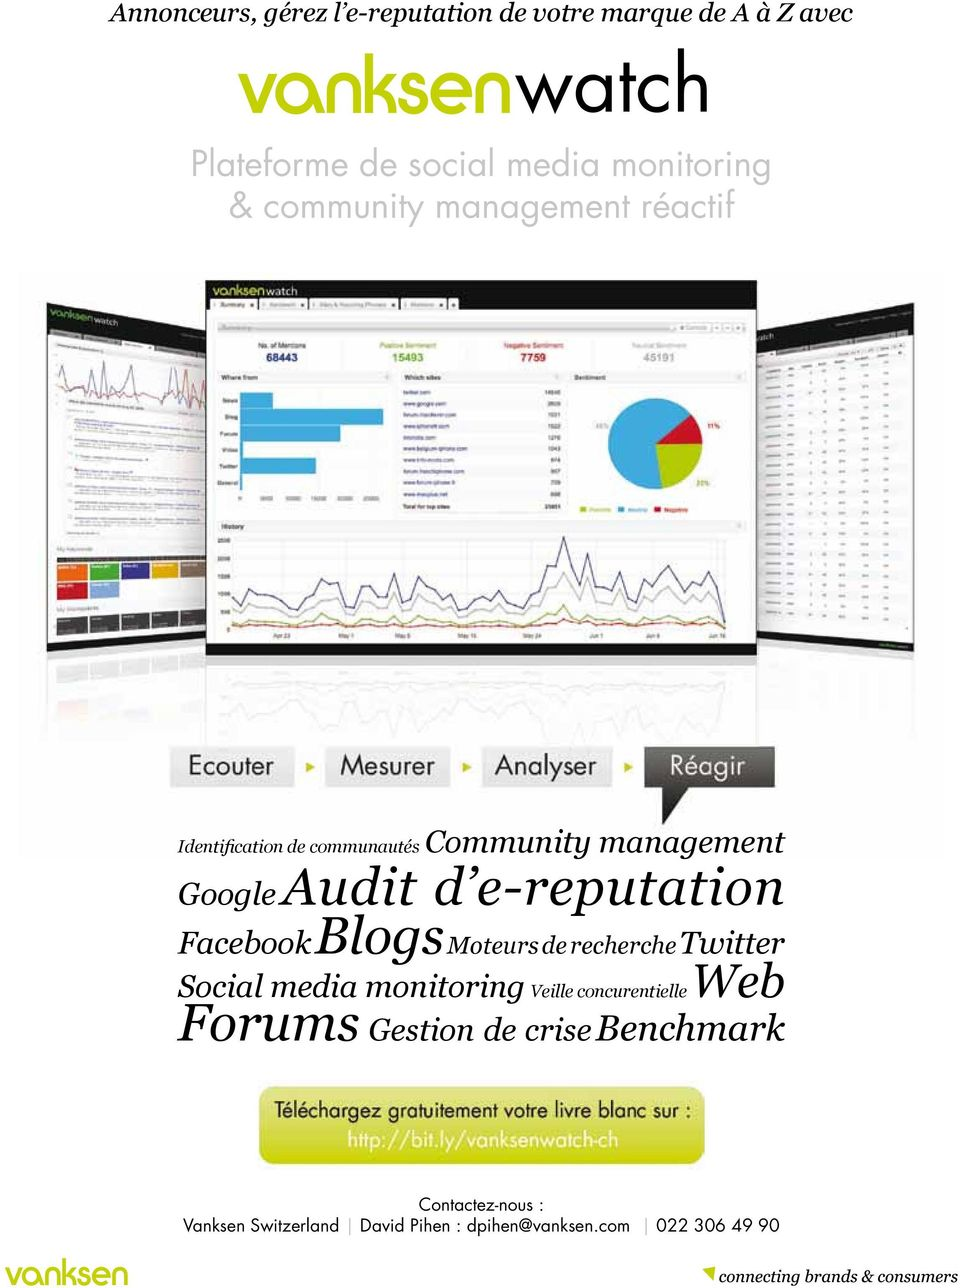 e-reputation Facebook Blogs Moteurs de recherche Twitter Social media monitoring Veille concurentielle Web